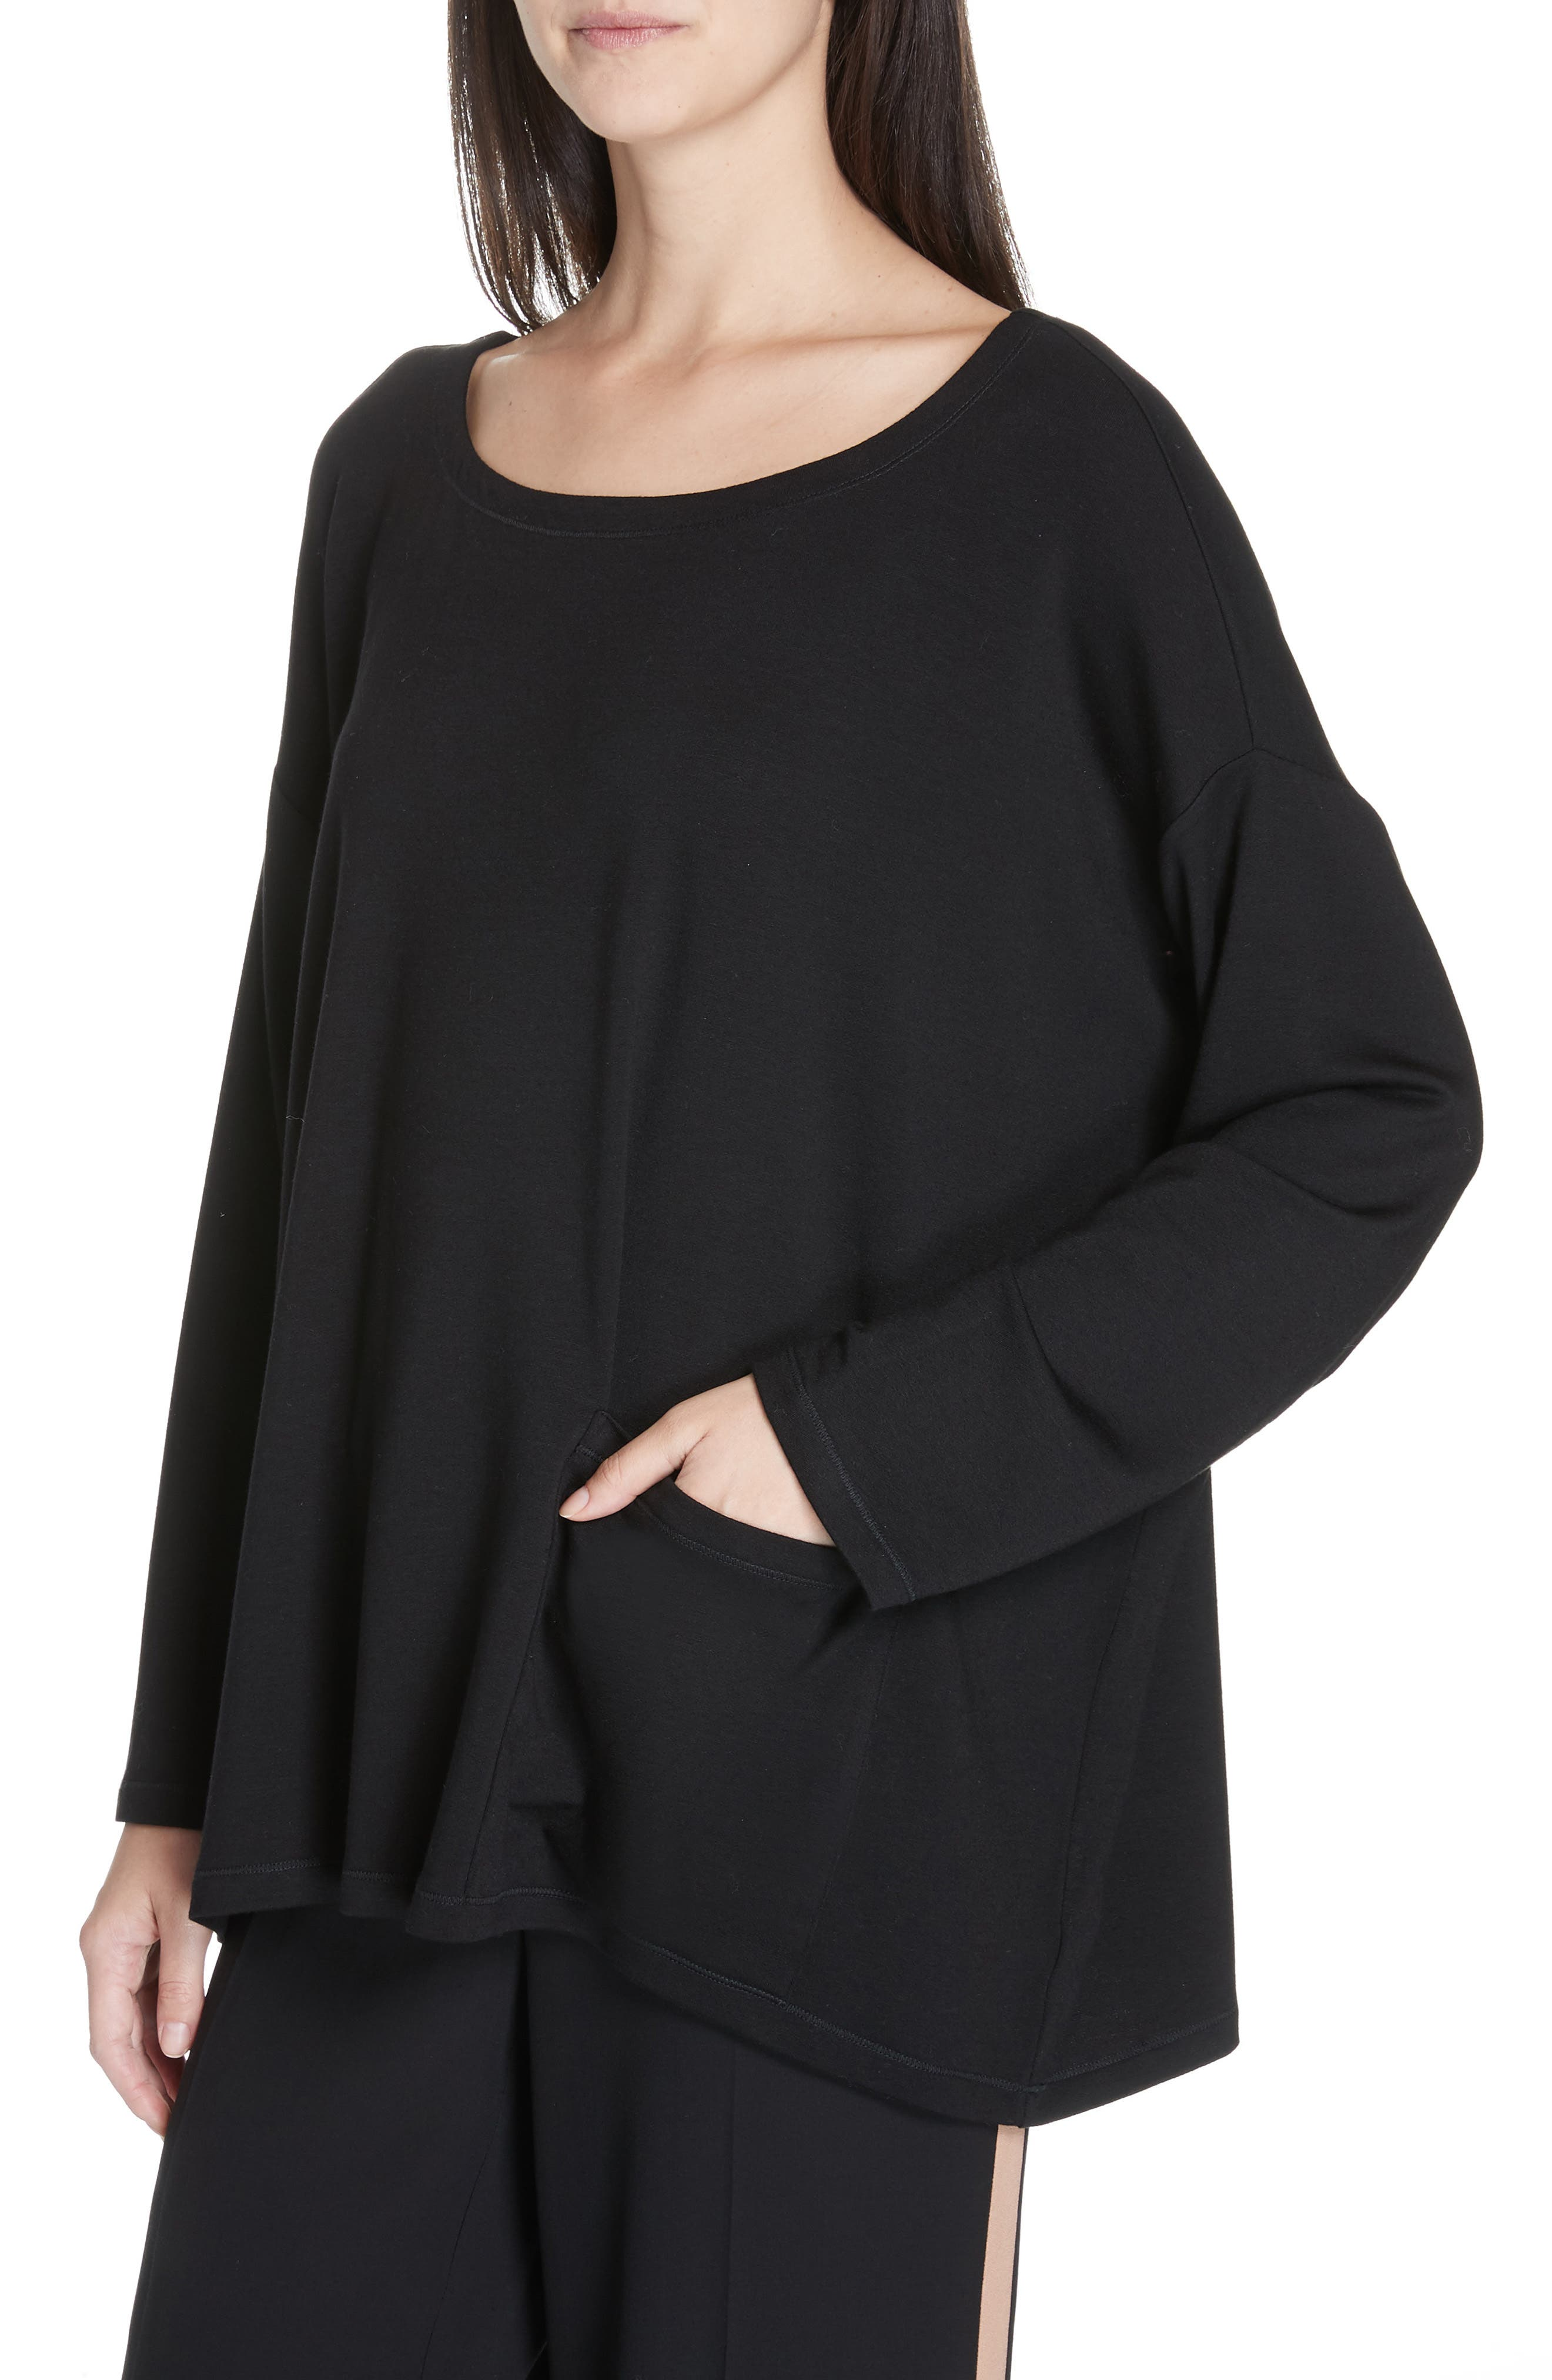 EILEEN FISHER, Stretch Terry Top, Alternate thumbnail 4, color, BLACK